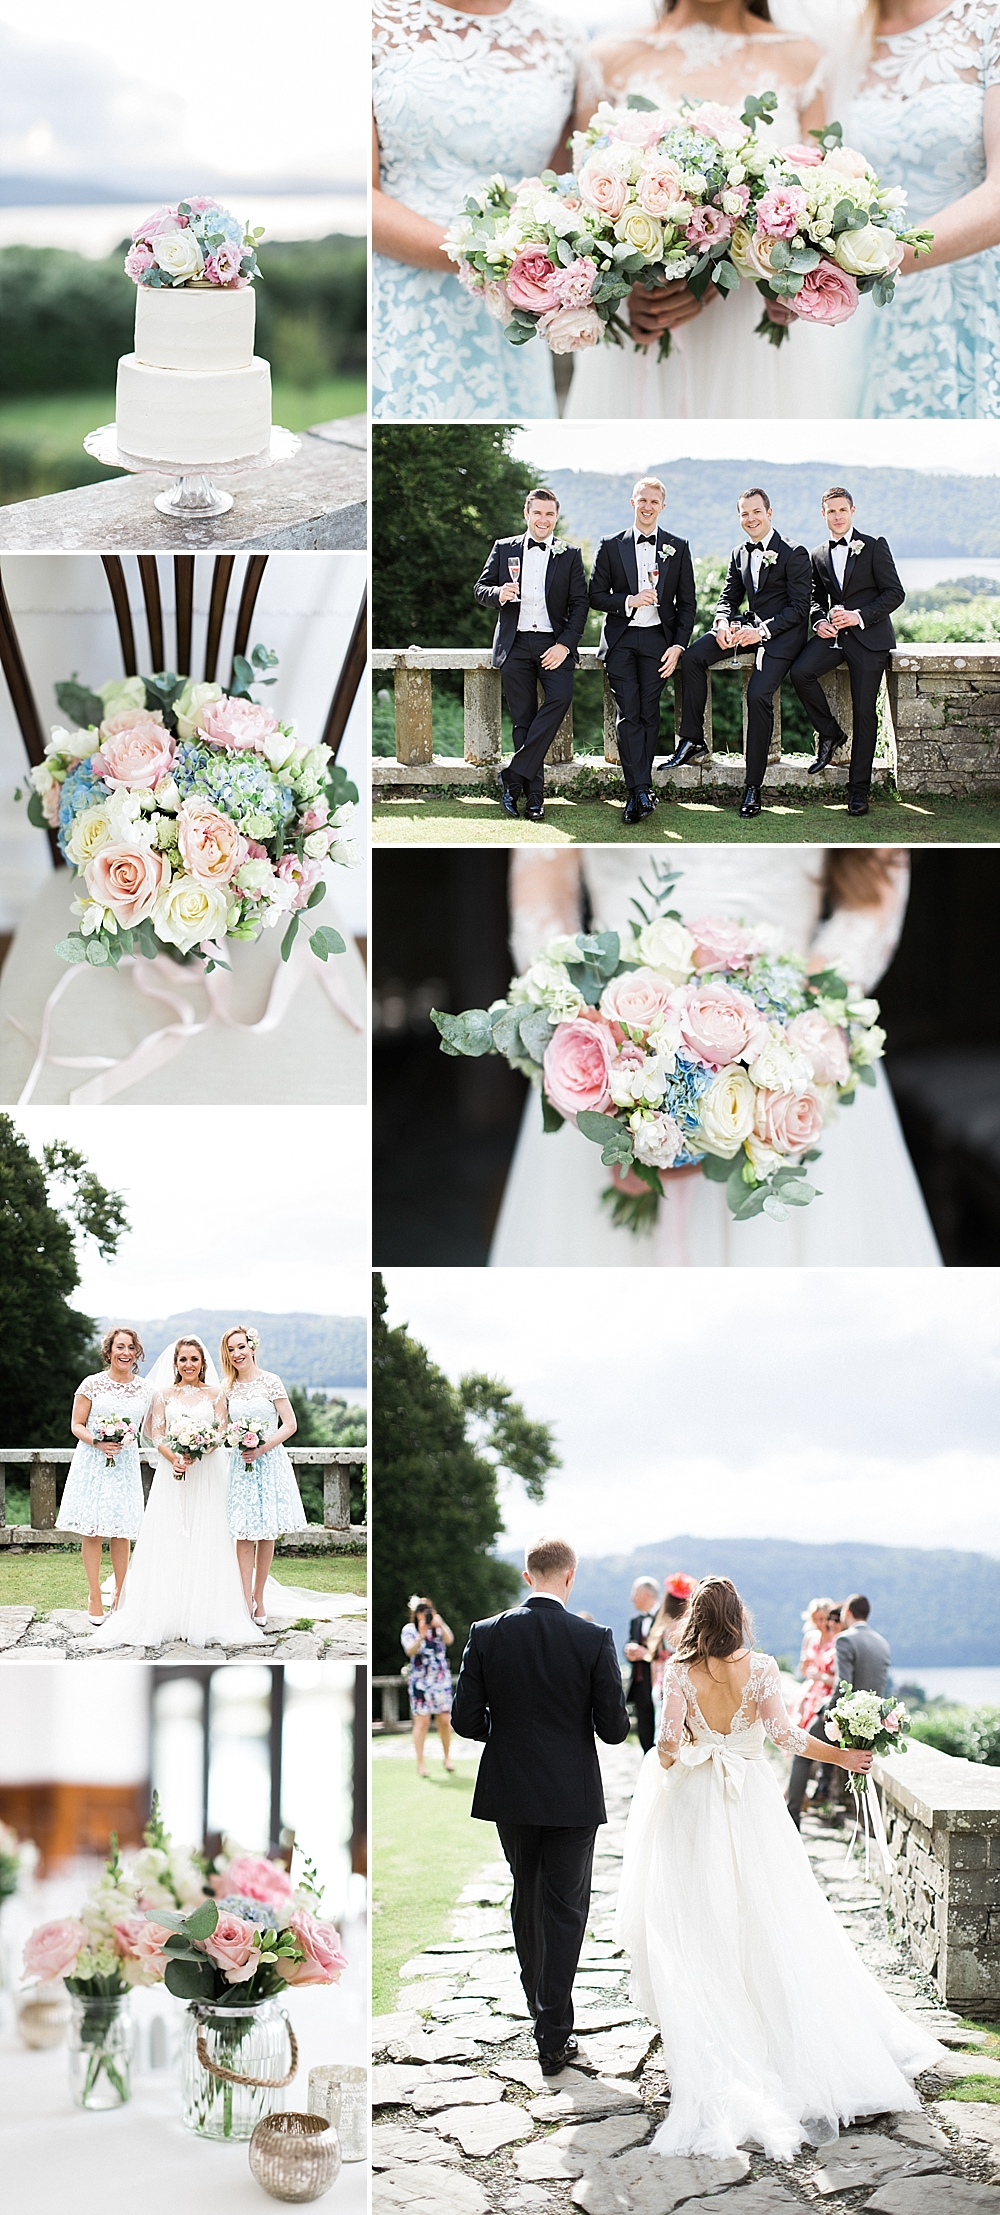 Romantic Black Tie Wedding with Pastel Flowers at Gossel Ridding Lake Windermere by Melissa Beattie Photography